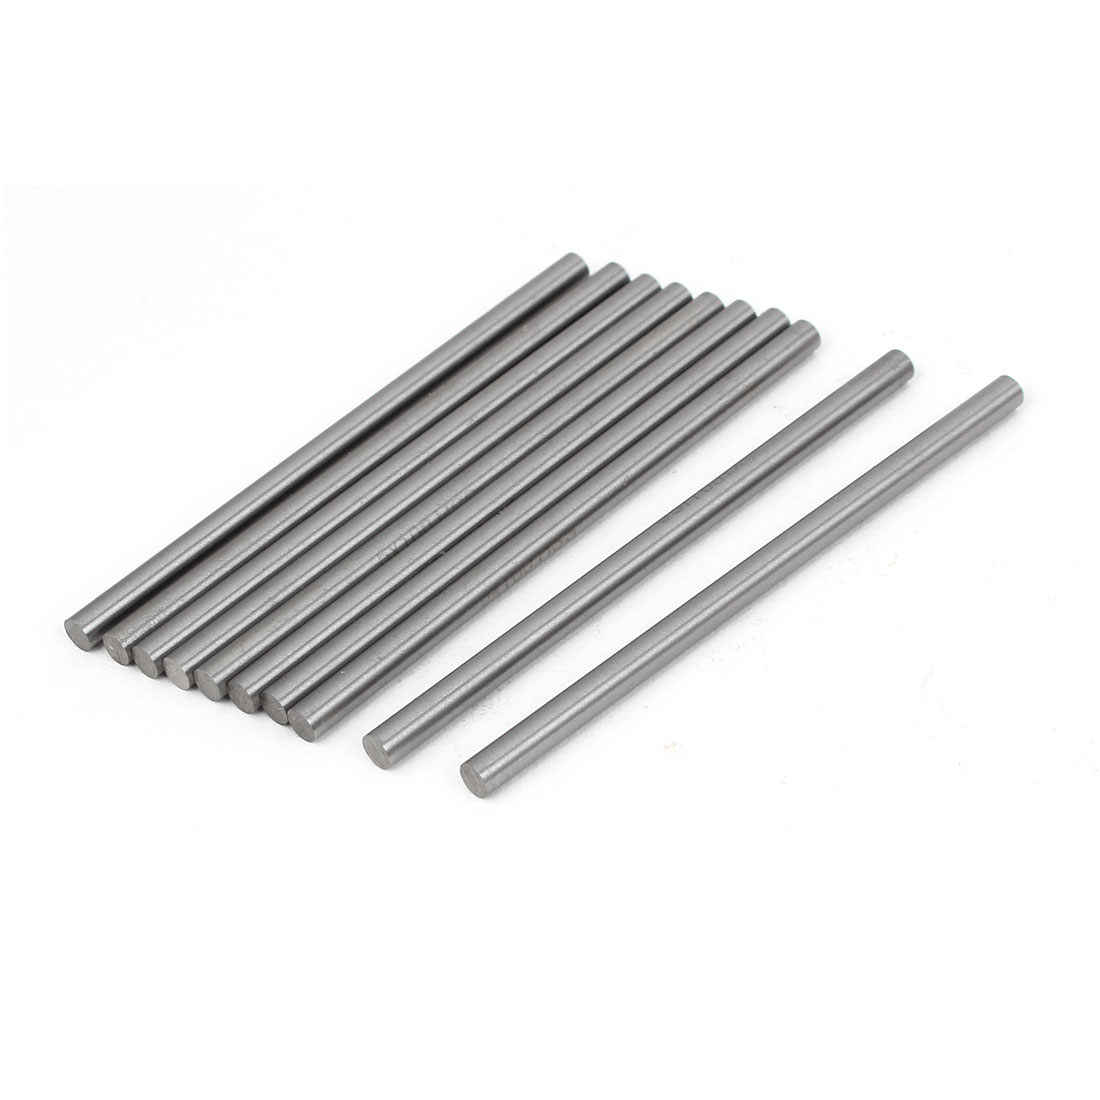 5mm x 100mm High Speed Steel Lathe Tool Round Stick Drill Rod Bar 10pcs